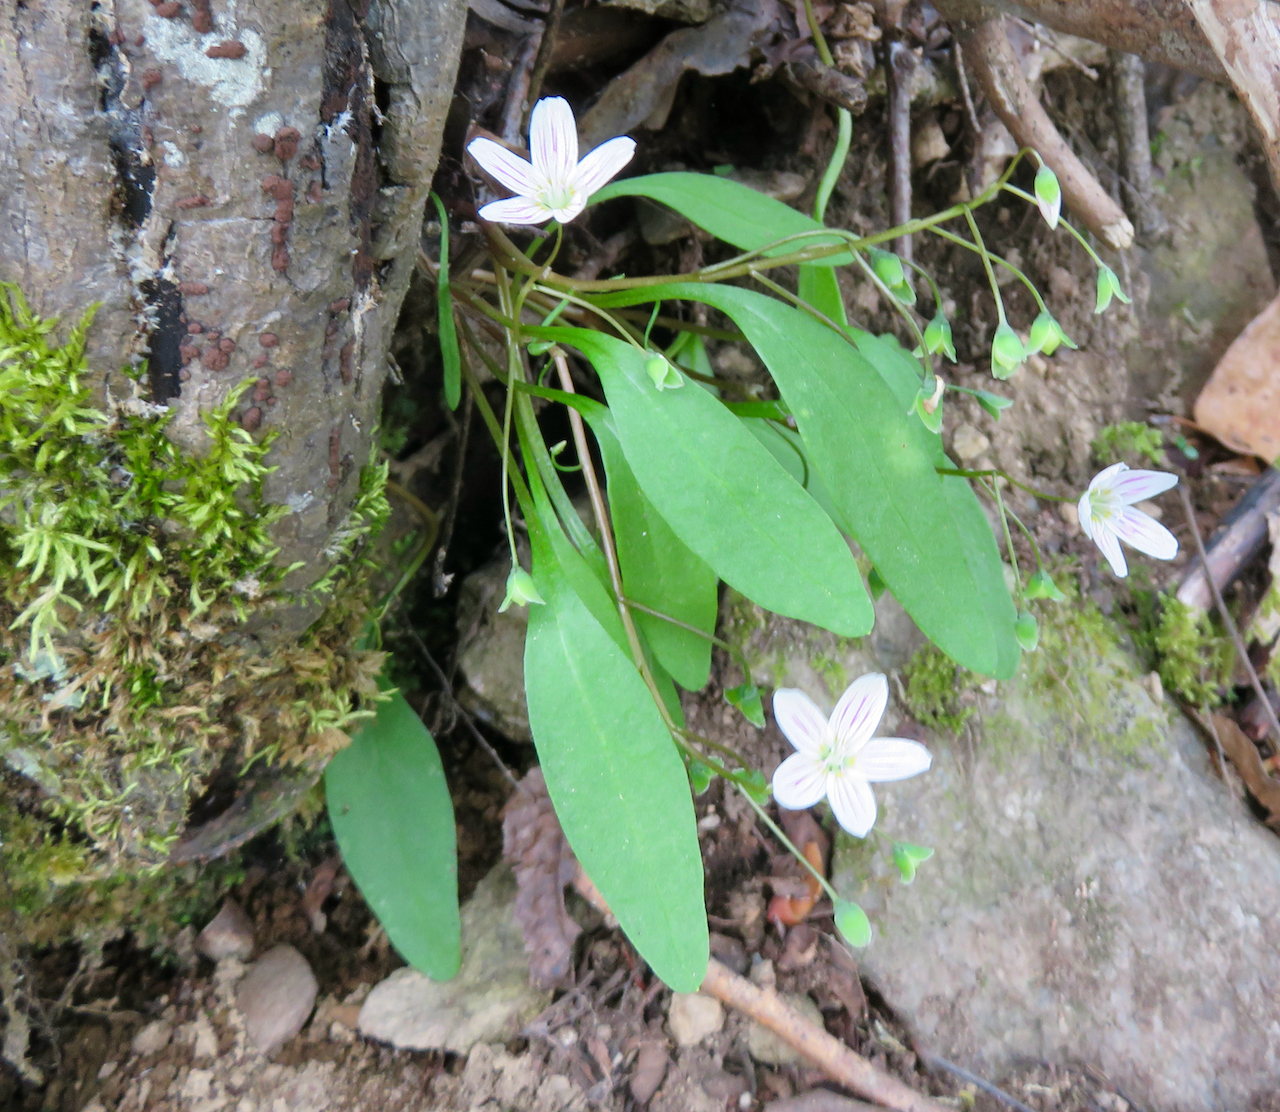 The Scientific Name is Claytonia caroliniana. You will likely hear them called Carolina Spring-beauty. This picture shows the Leaves have petioles and are elliptical to spoon-shaped of Claytonia caroliniana